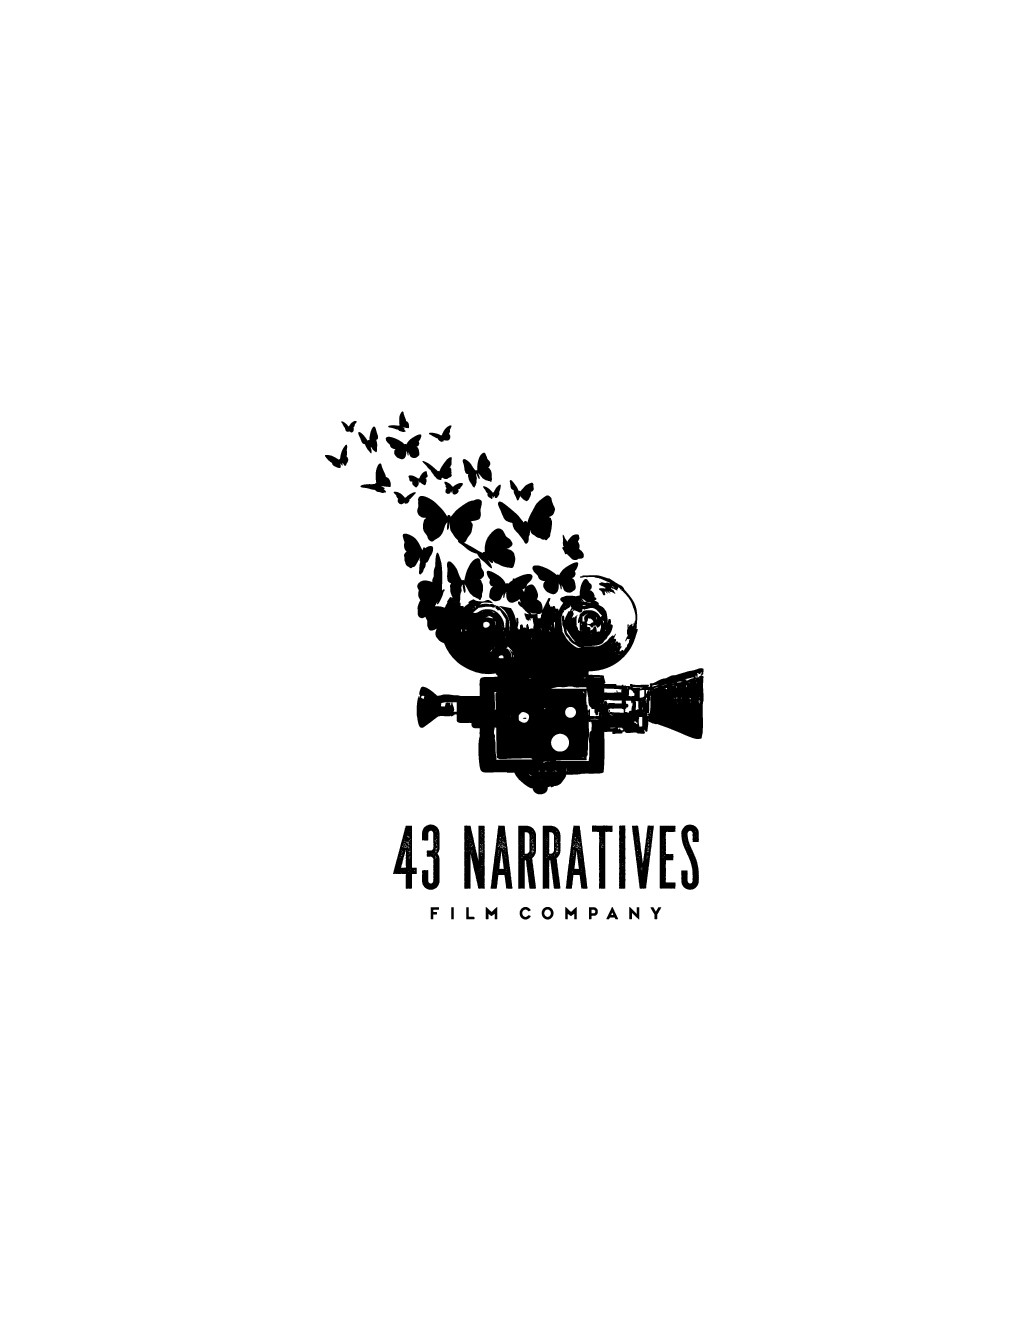 Design a quirky logo for our film company 43Narratives